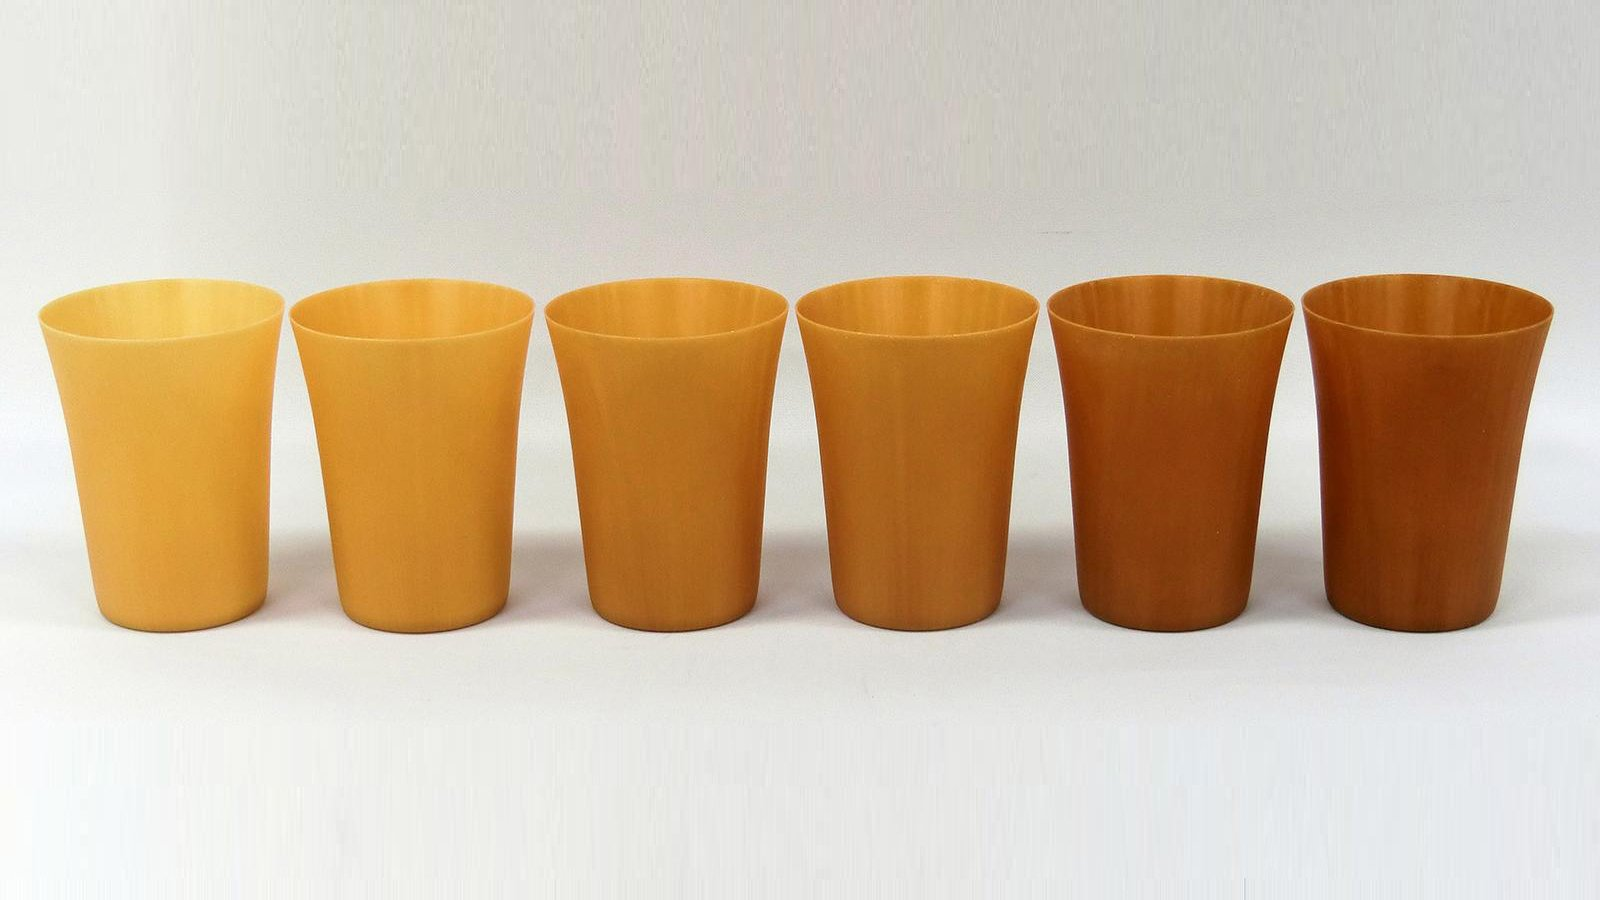 Photo: Reusable cups made from high concentration cellulose fiber molding material